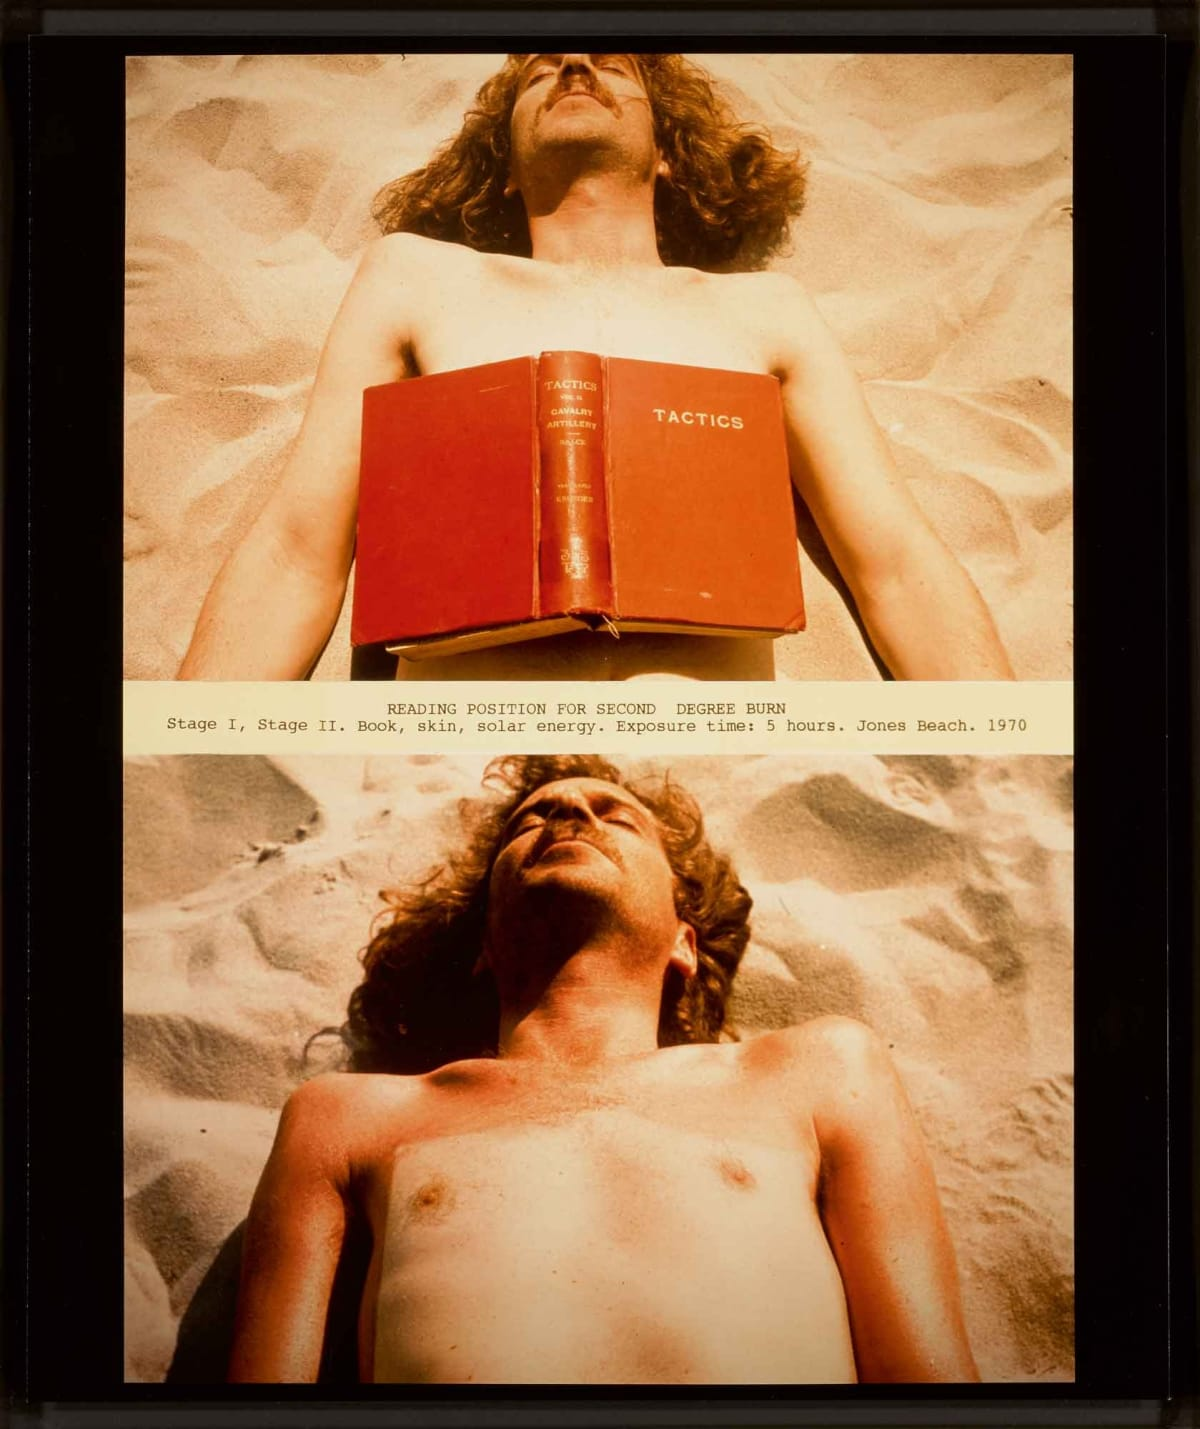 Dennis OPPENHEIM 1938 - 2011 Reading Position for Second Degree Burn, 1970 Signed and editioned 4/30 in ink on reverse Chromogenic print (Printed 2000-2001) 59.7 x 42.5 cm Edition 4 of 30 (DOP002) Copyright Dennis Oppenheim Courtesy Oppenheim Estate